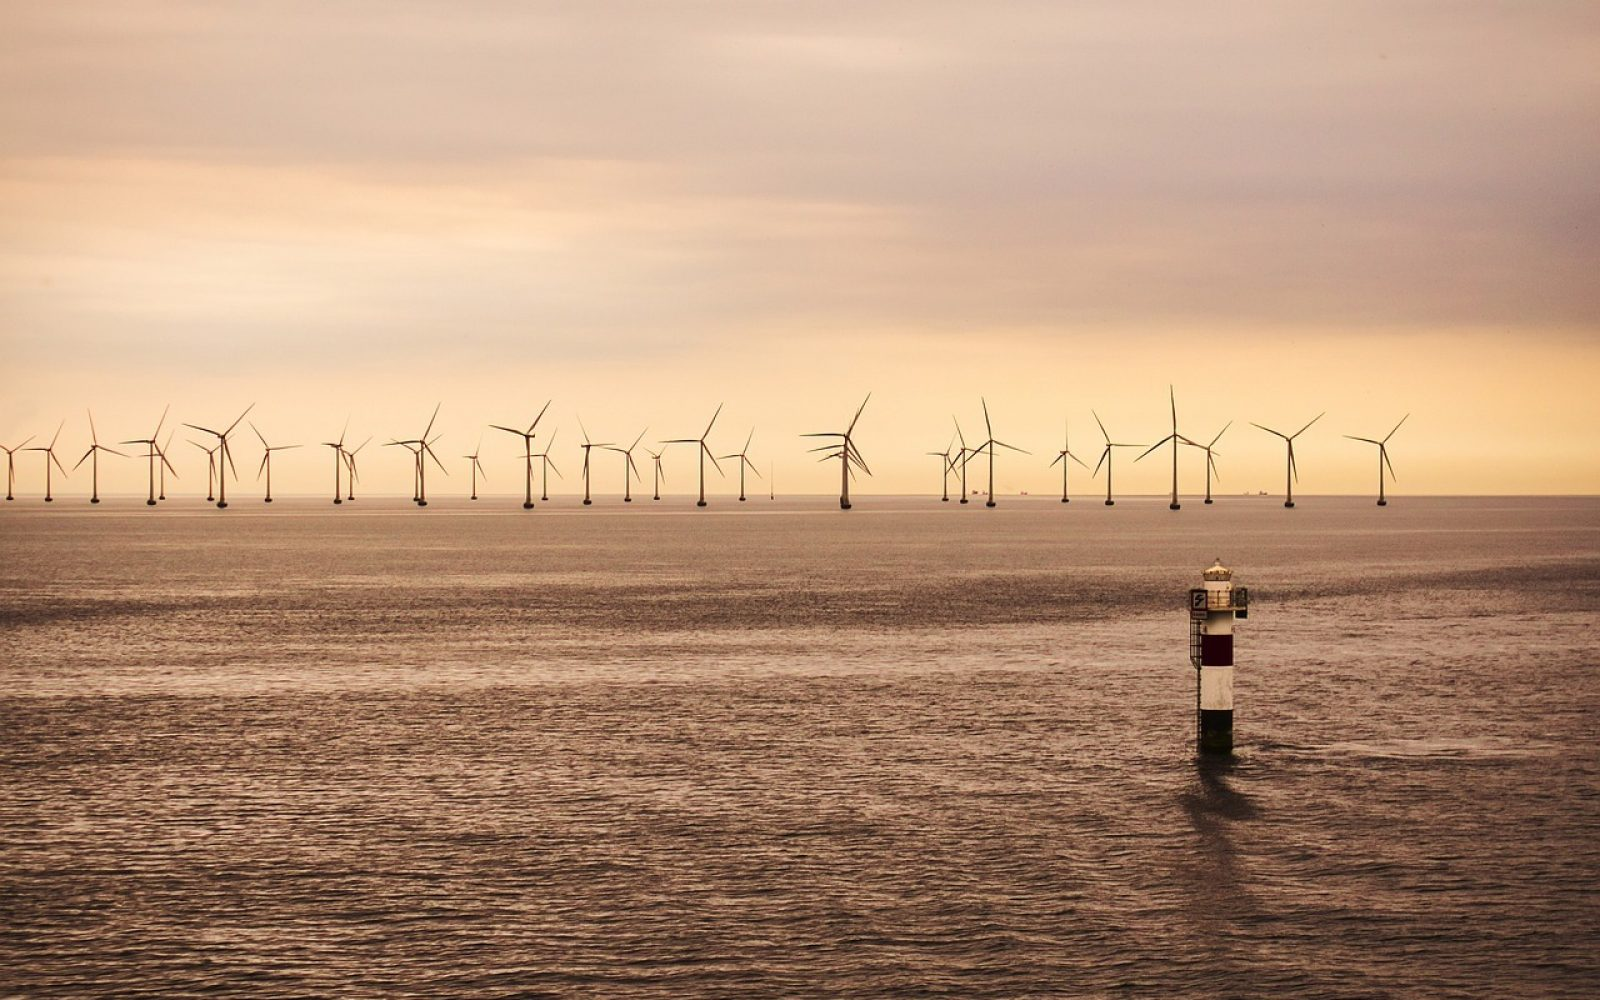 The Offshore Wind Sector Deal was launched in March 2019 to help grow the sector.